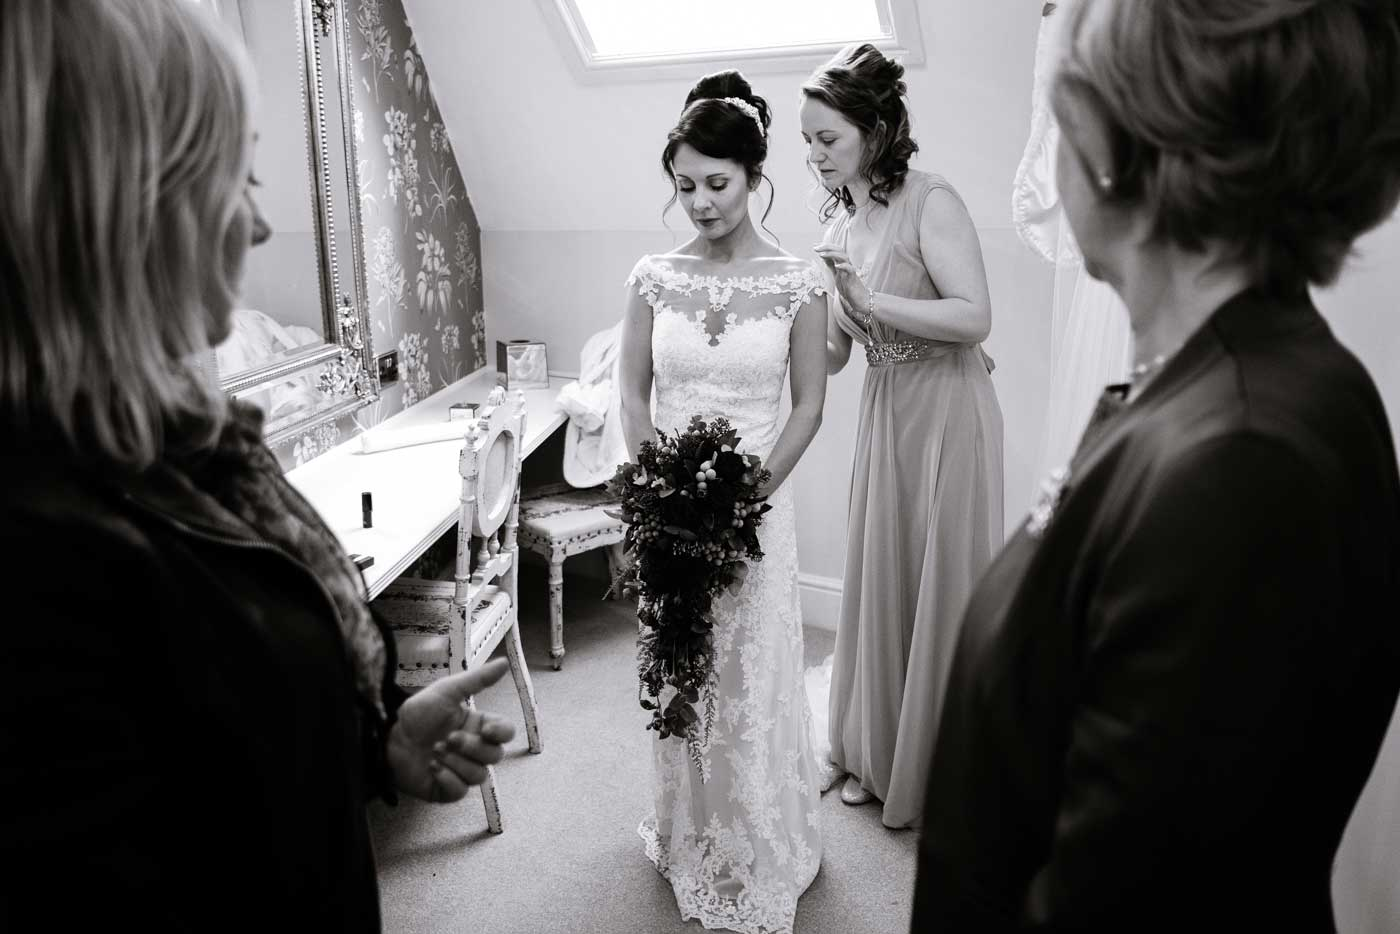 Pensive bride before her wedding by Stanbrook Abbey wedding photographer Clive Blair Photography